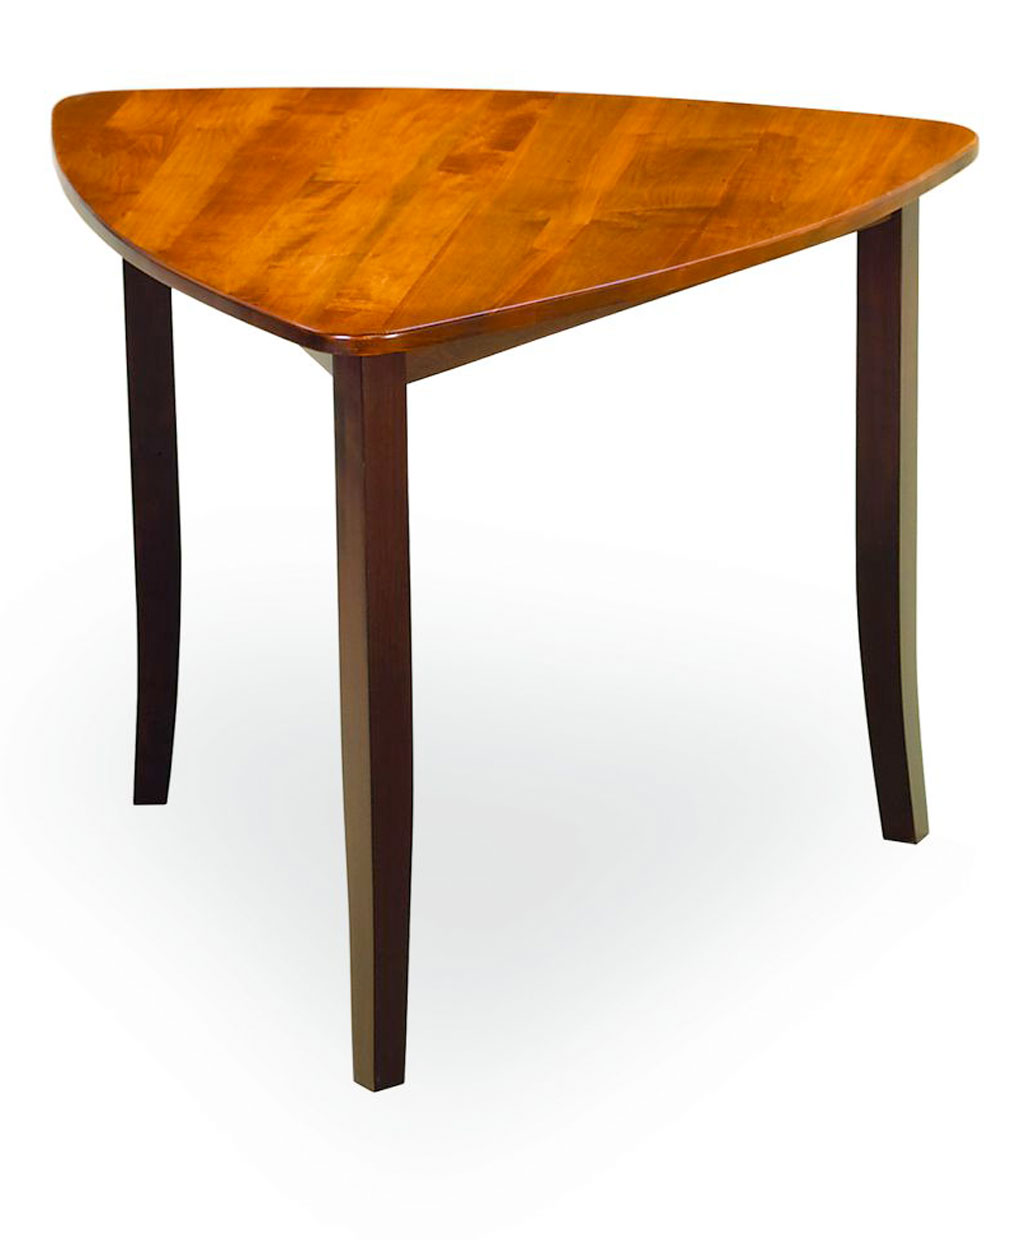 Trinidad amish triangle table